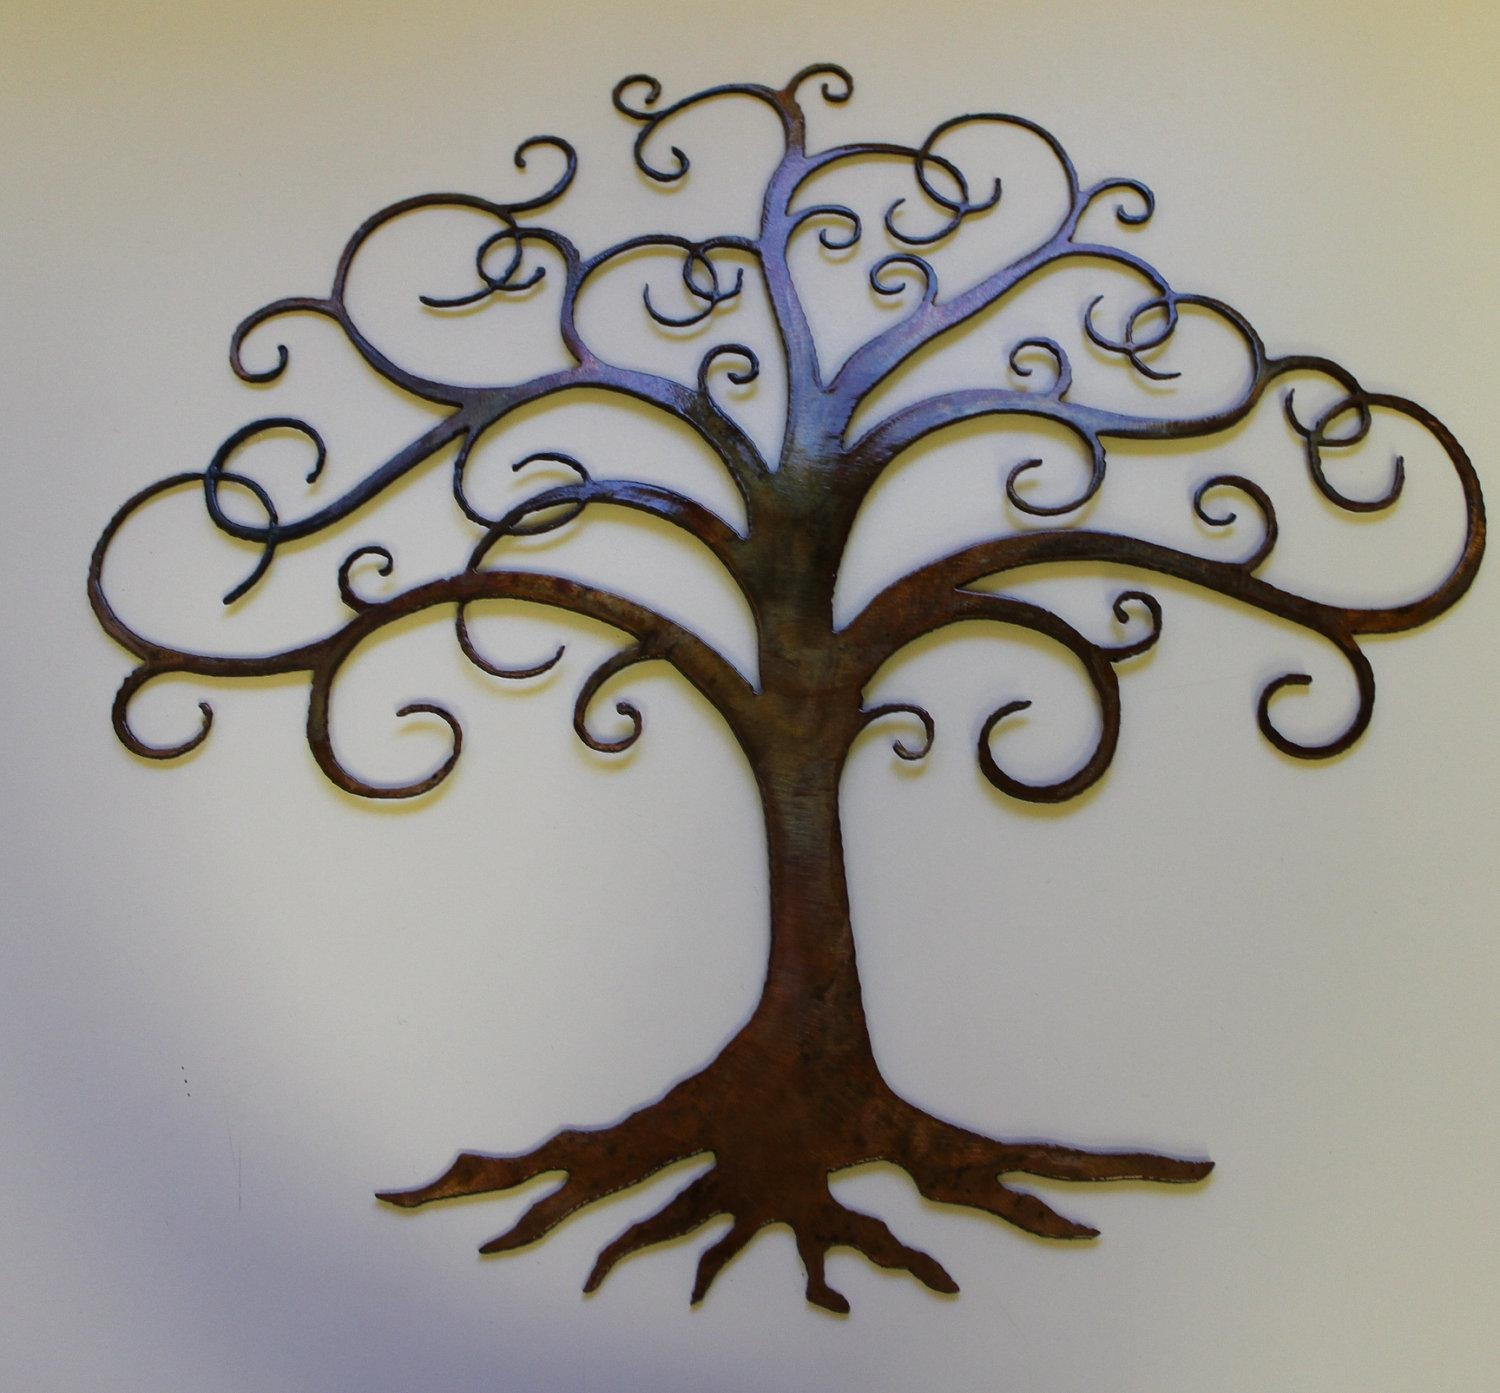 Superb Large Metal Tree Wall Decoration 77 Contemporary 'large Oak Inside Contemporary Large Oak Tree Metal Wall Art (View 10 of 20)